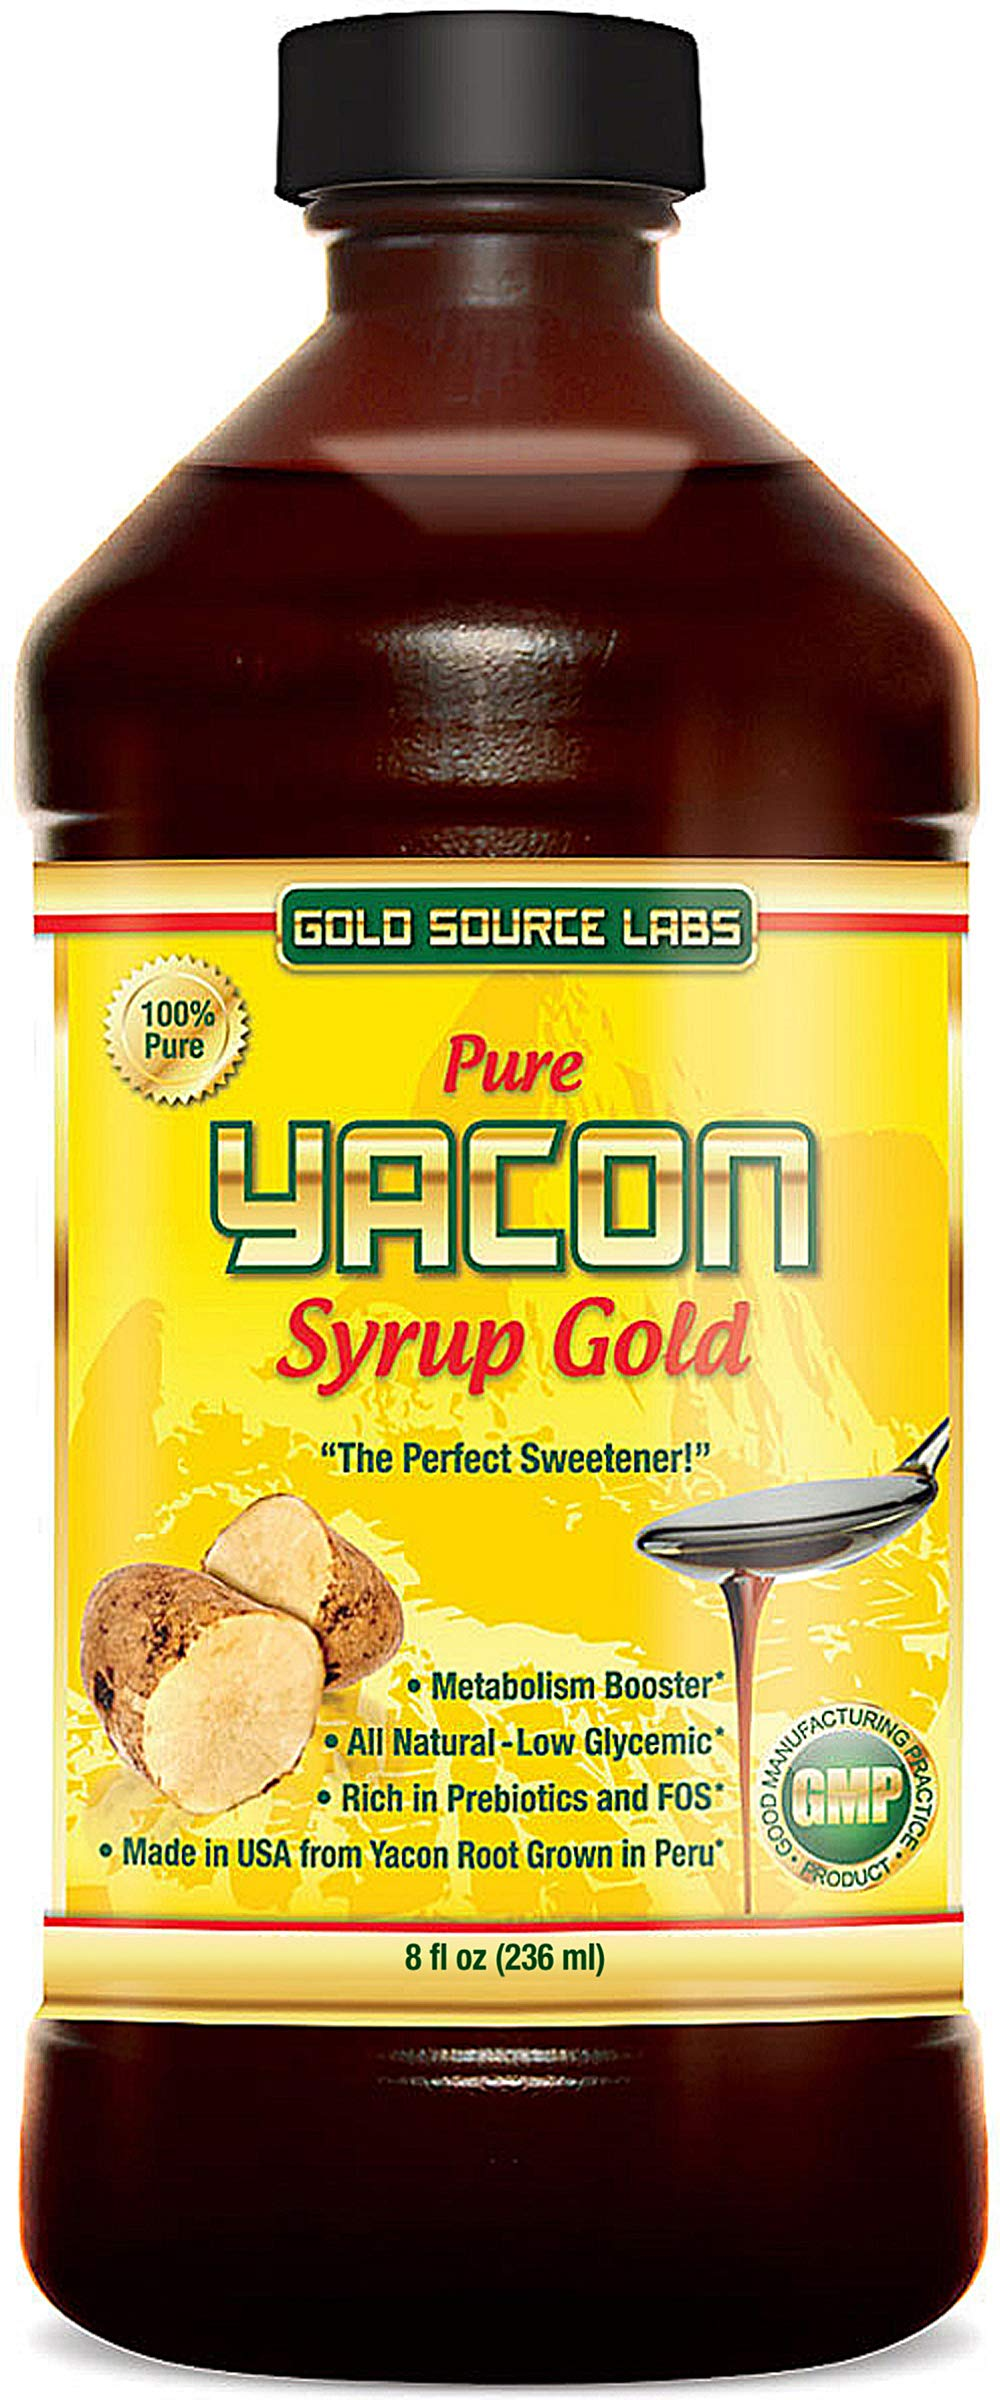 Pure Yacon Syrup Gold - All Natural Sweetener and Sugar Substitute, Highest FOS Prebiotics, 8 oz - Raw Root Extract Controls Appetite, Boosts Metabolism, Lowers Blood Sugar, Keto Weight Loss Diet by Gold Source Labs